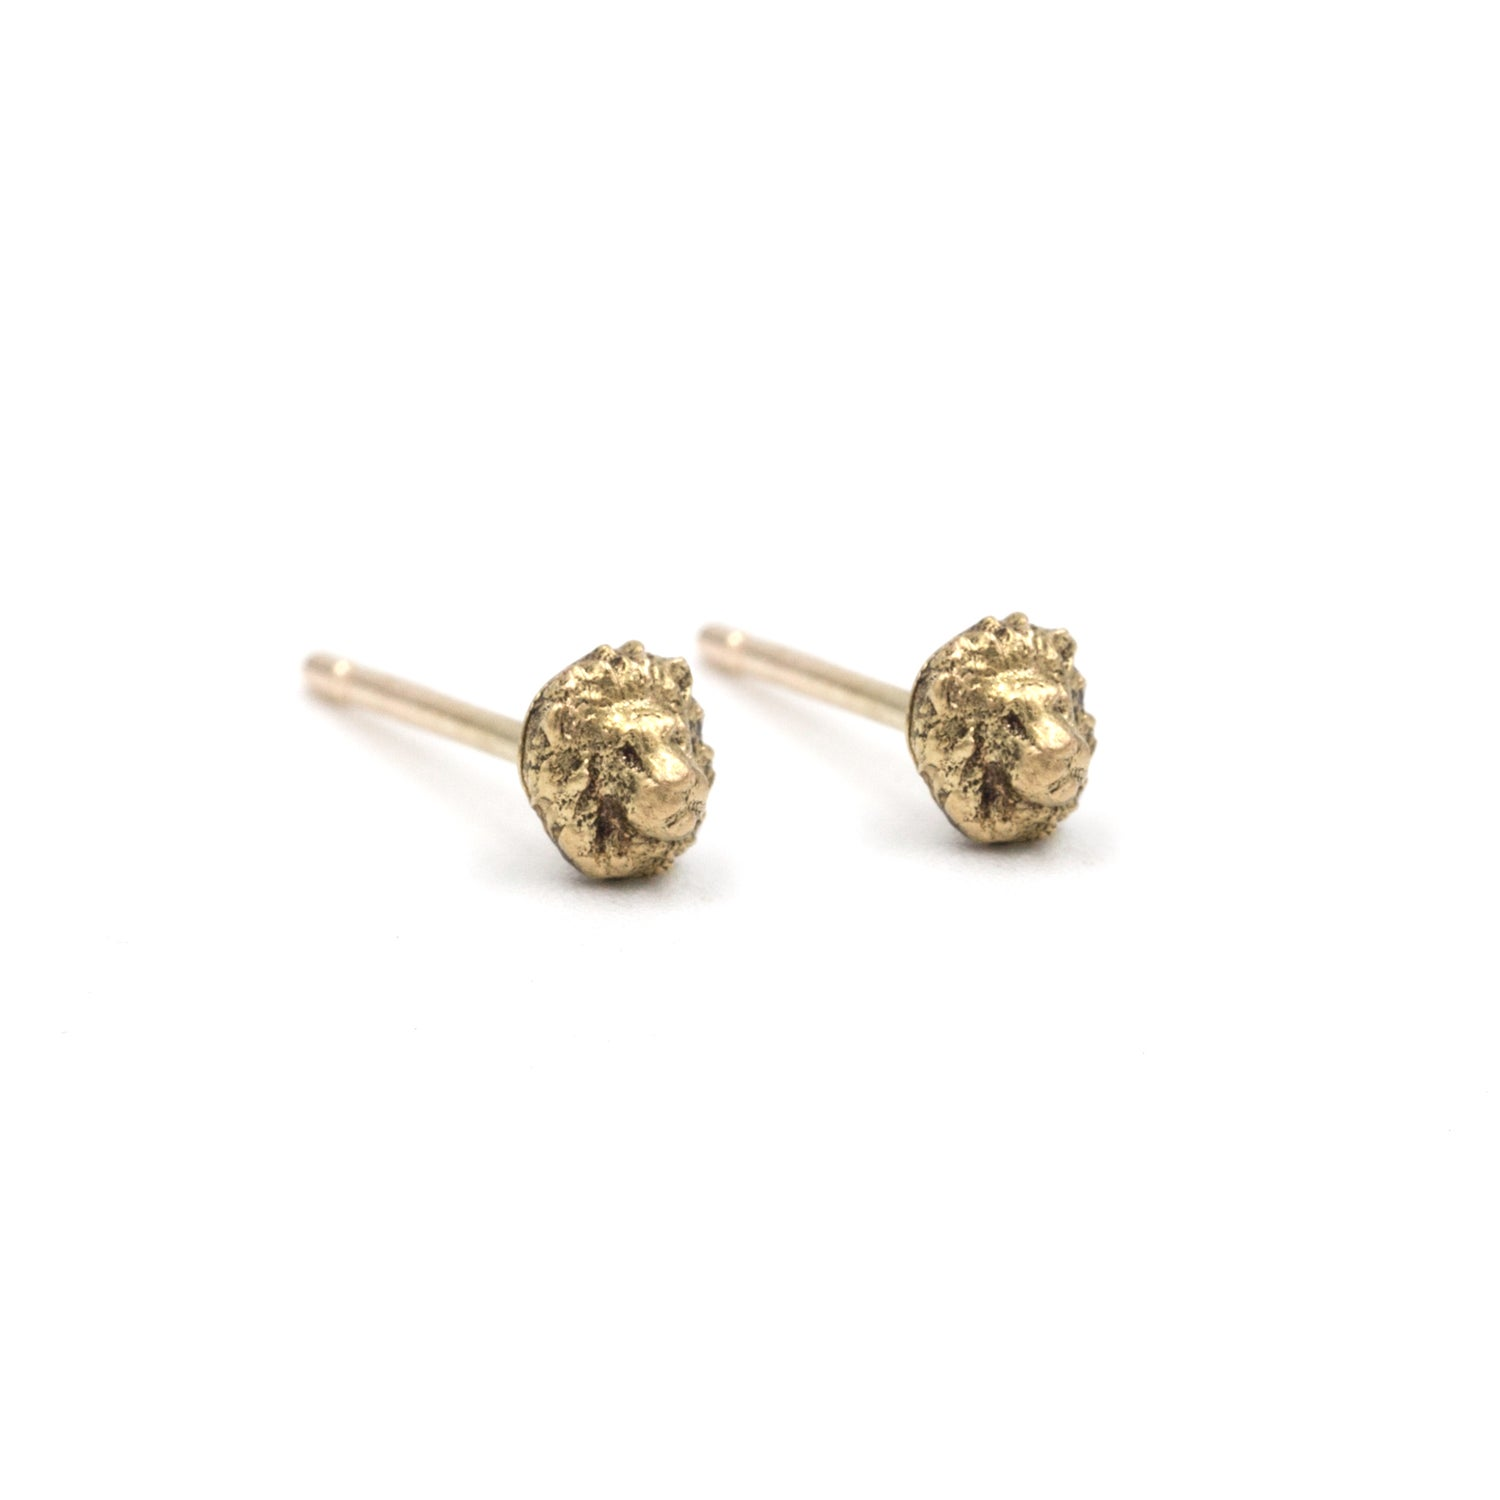 Image of Tiny Lion Studs- 14K Gold